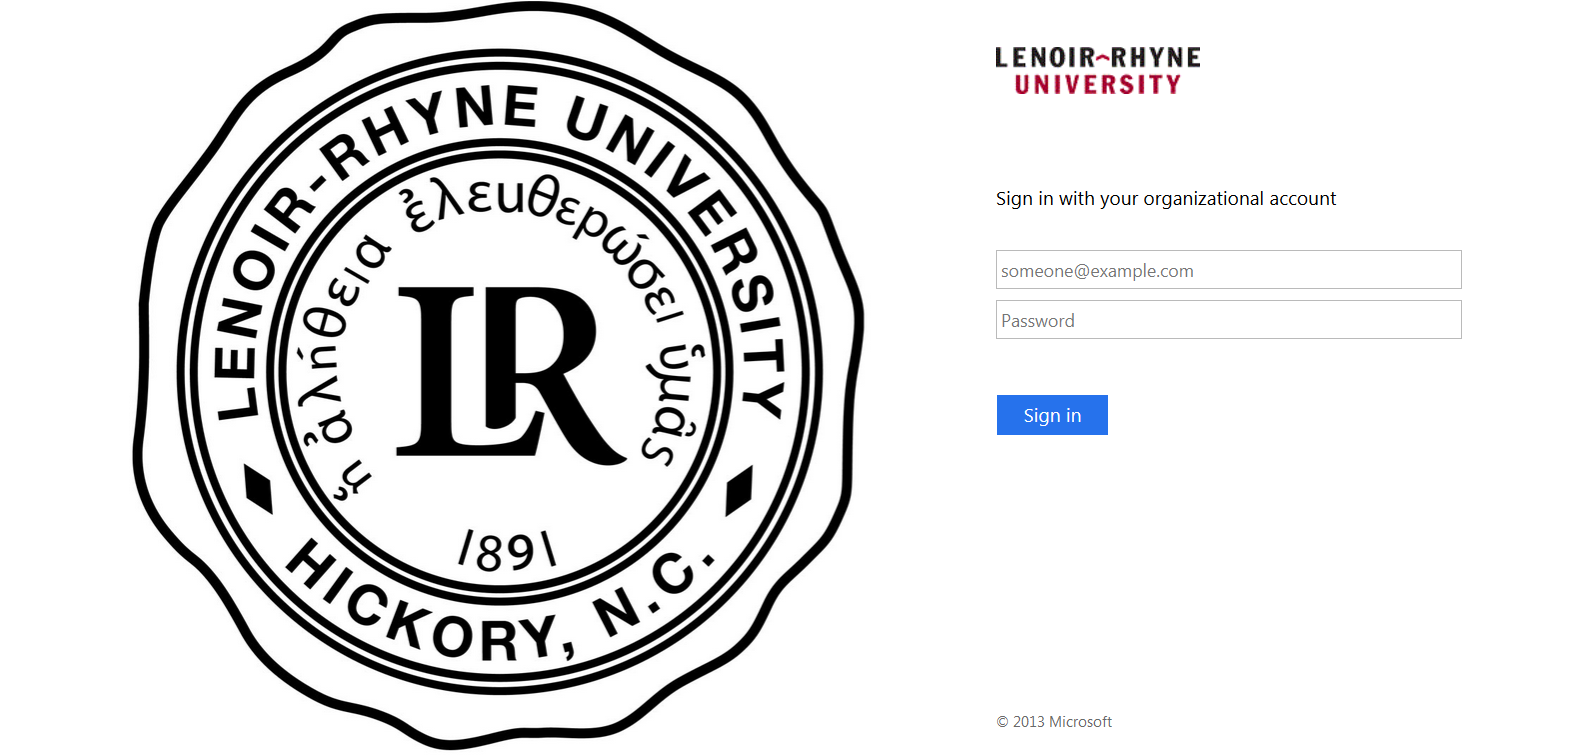 black and white lenoir-rhyne login